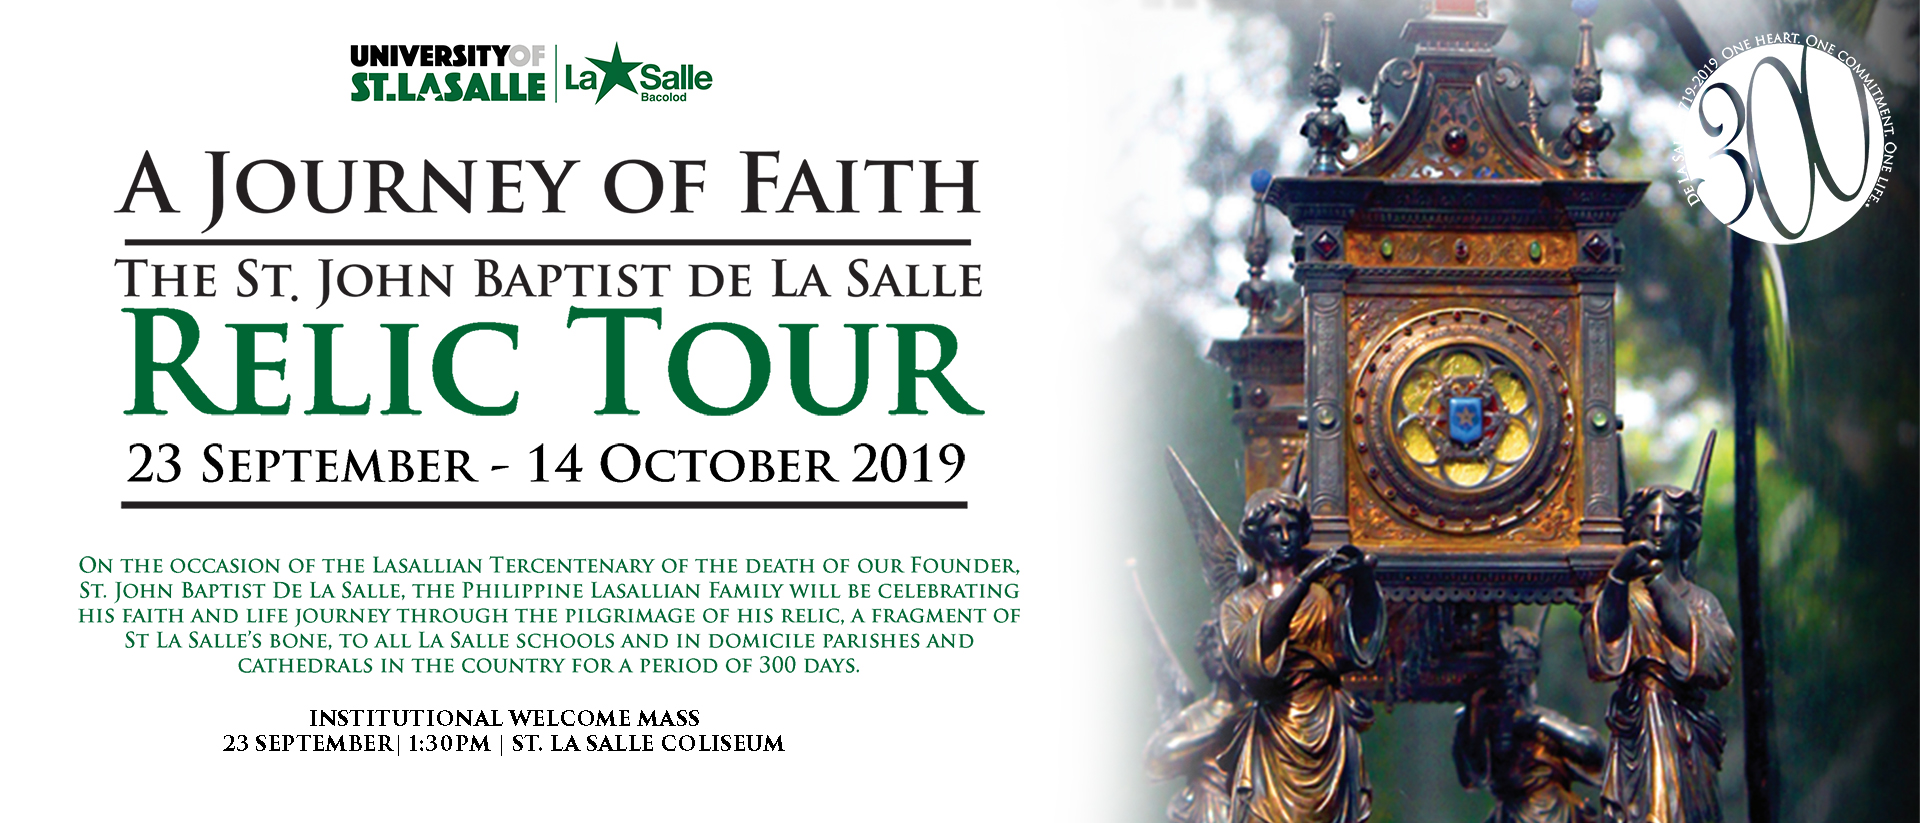 A-Journey-of-Faith-The-St-John-Baptiste-De-La-Salle-Relic-Tour.jpg